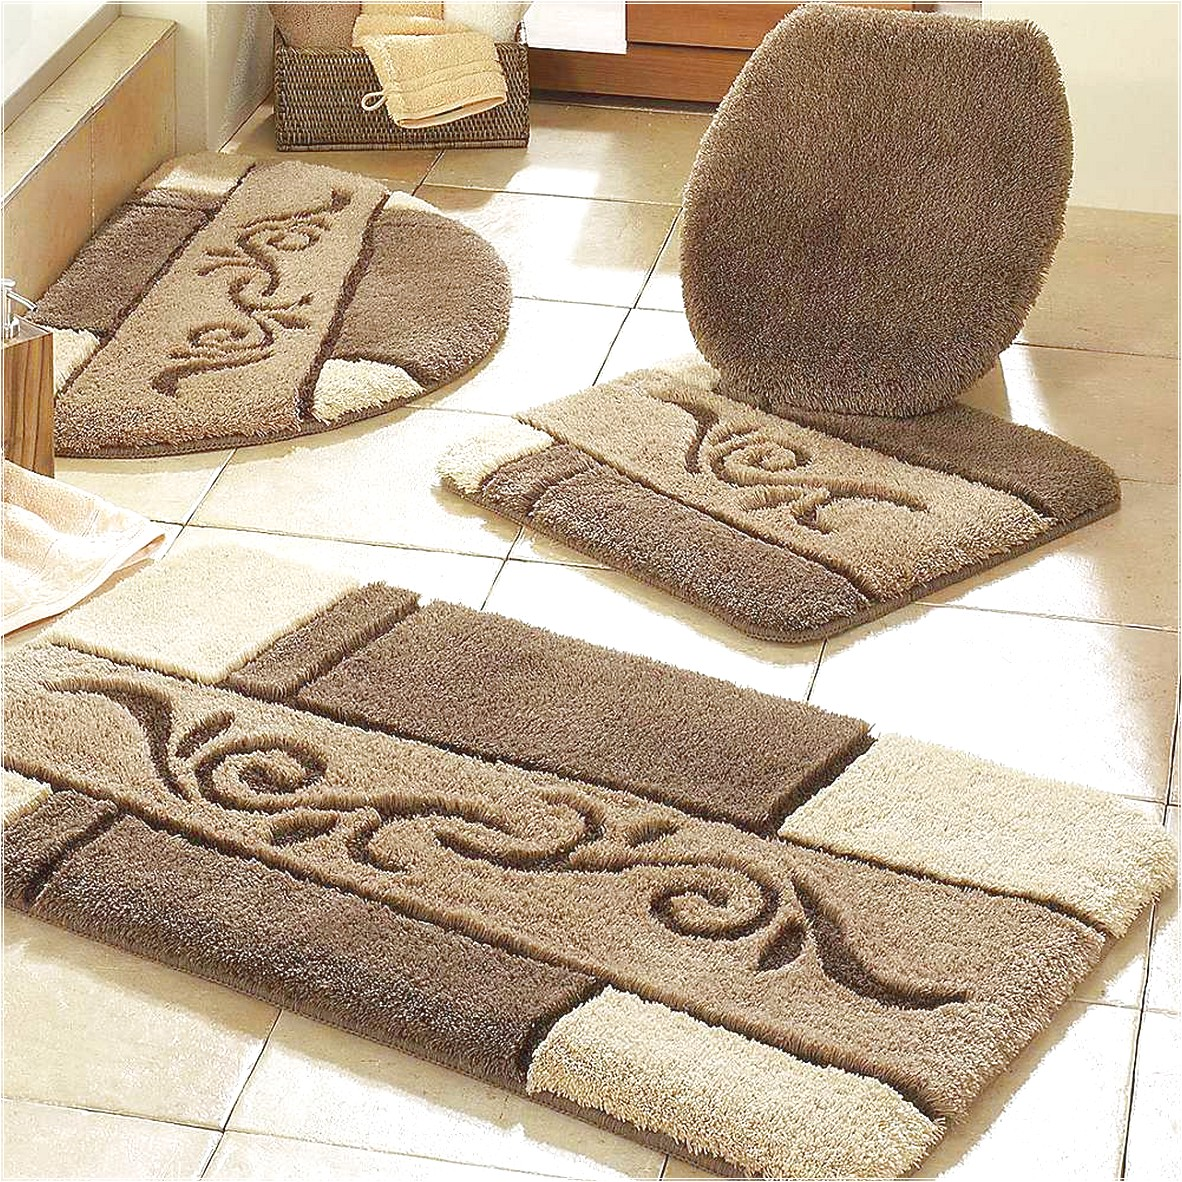 bathroom rug sets spectacular bath rug sets awesome bathroom rugs sets ideas for high FWGYSDJ